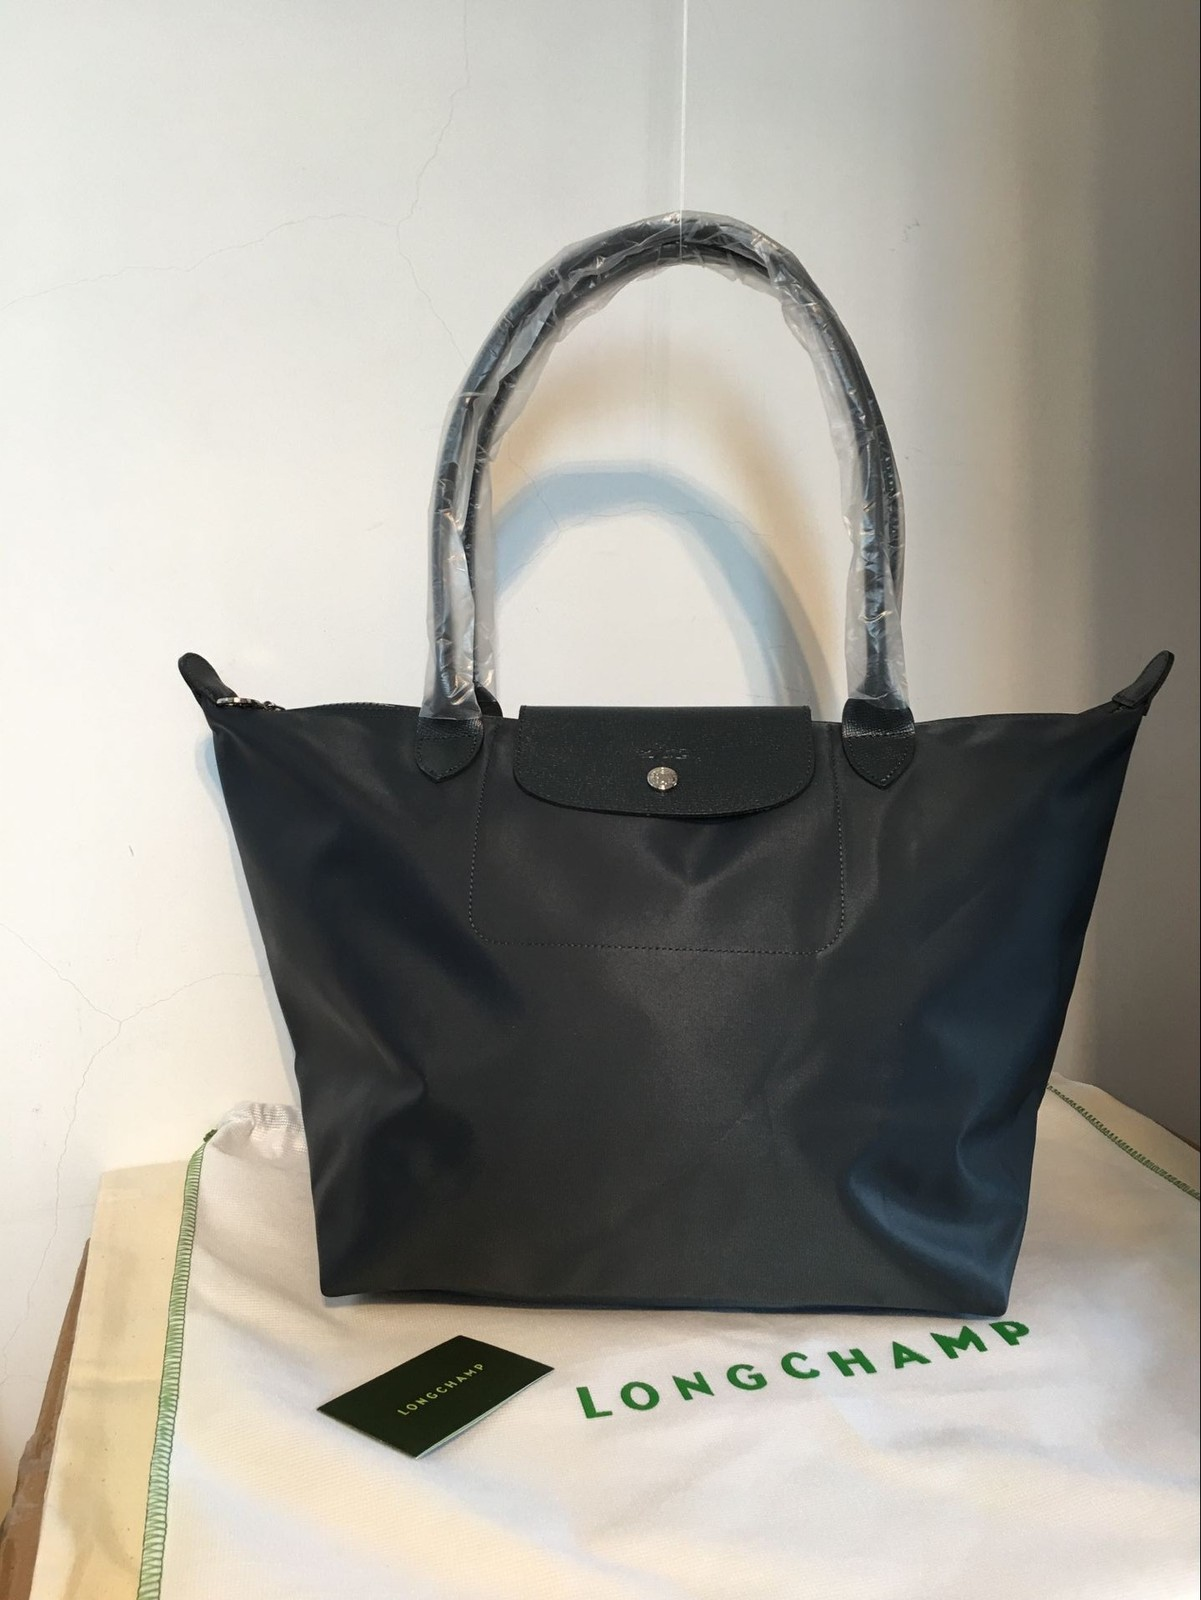 Qq 20170308123942. Qq 20170308123942. Previous. France Made Longchamp Le  Pliage Neo Large Tote Bag Graphite 1899578897 Authentic afdbc11b7dd80